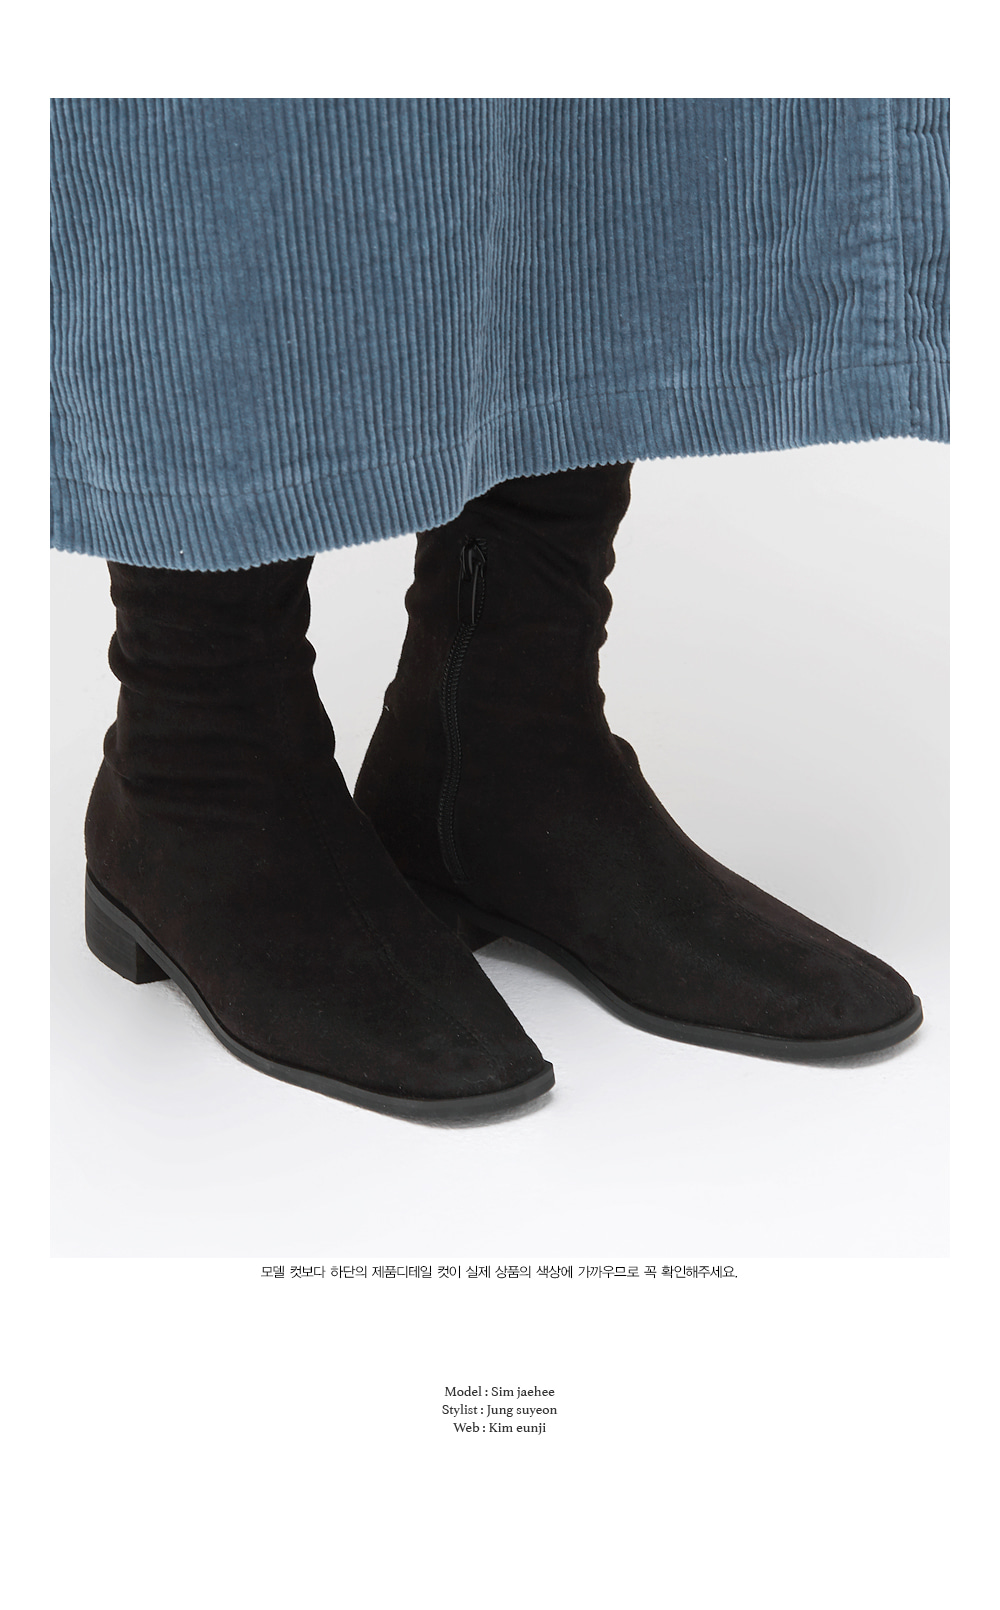 a knee high socks suede boots